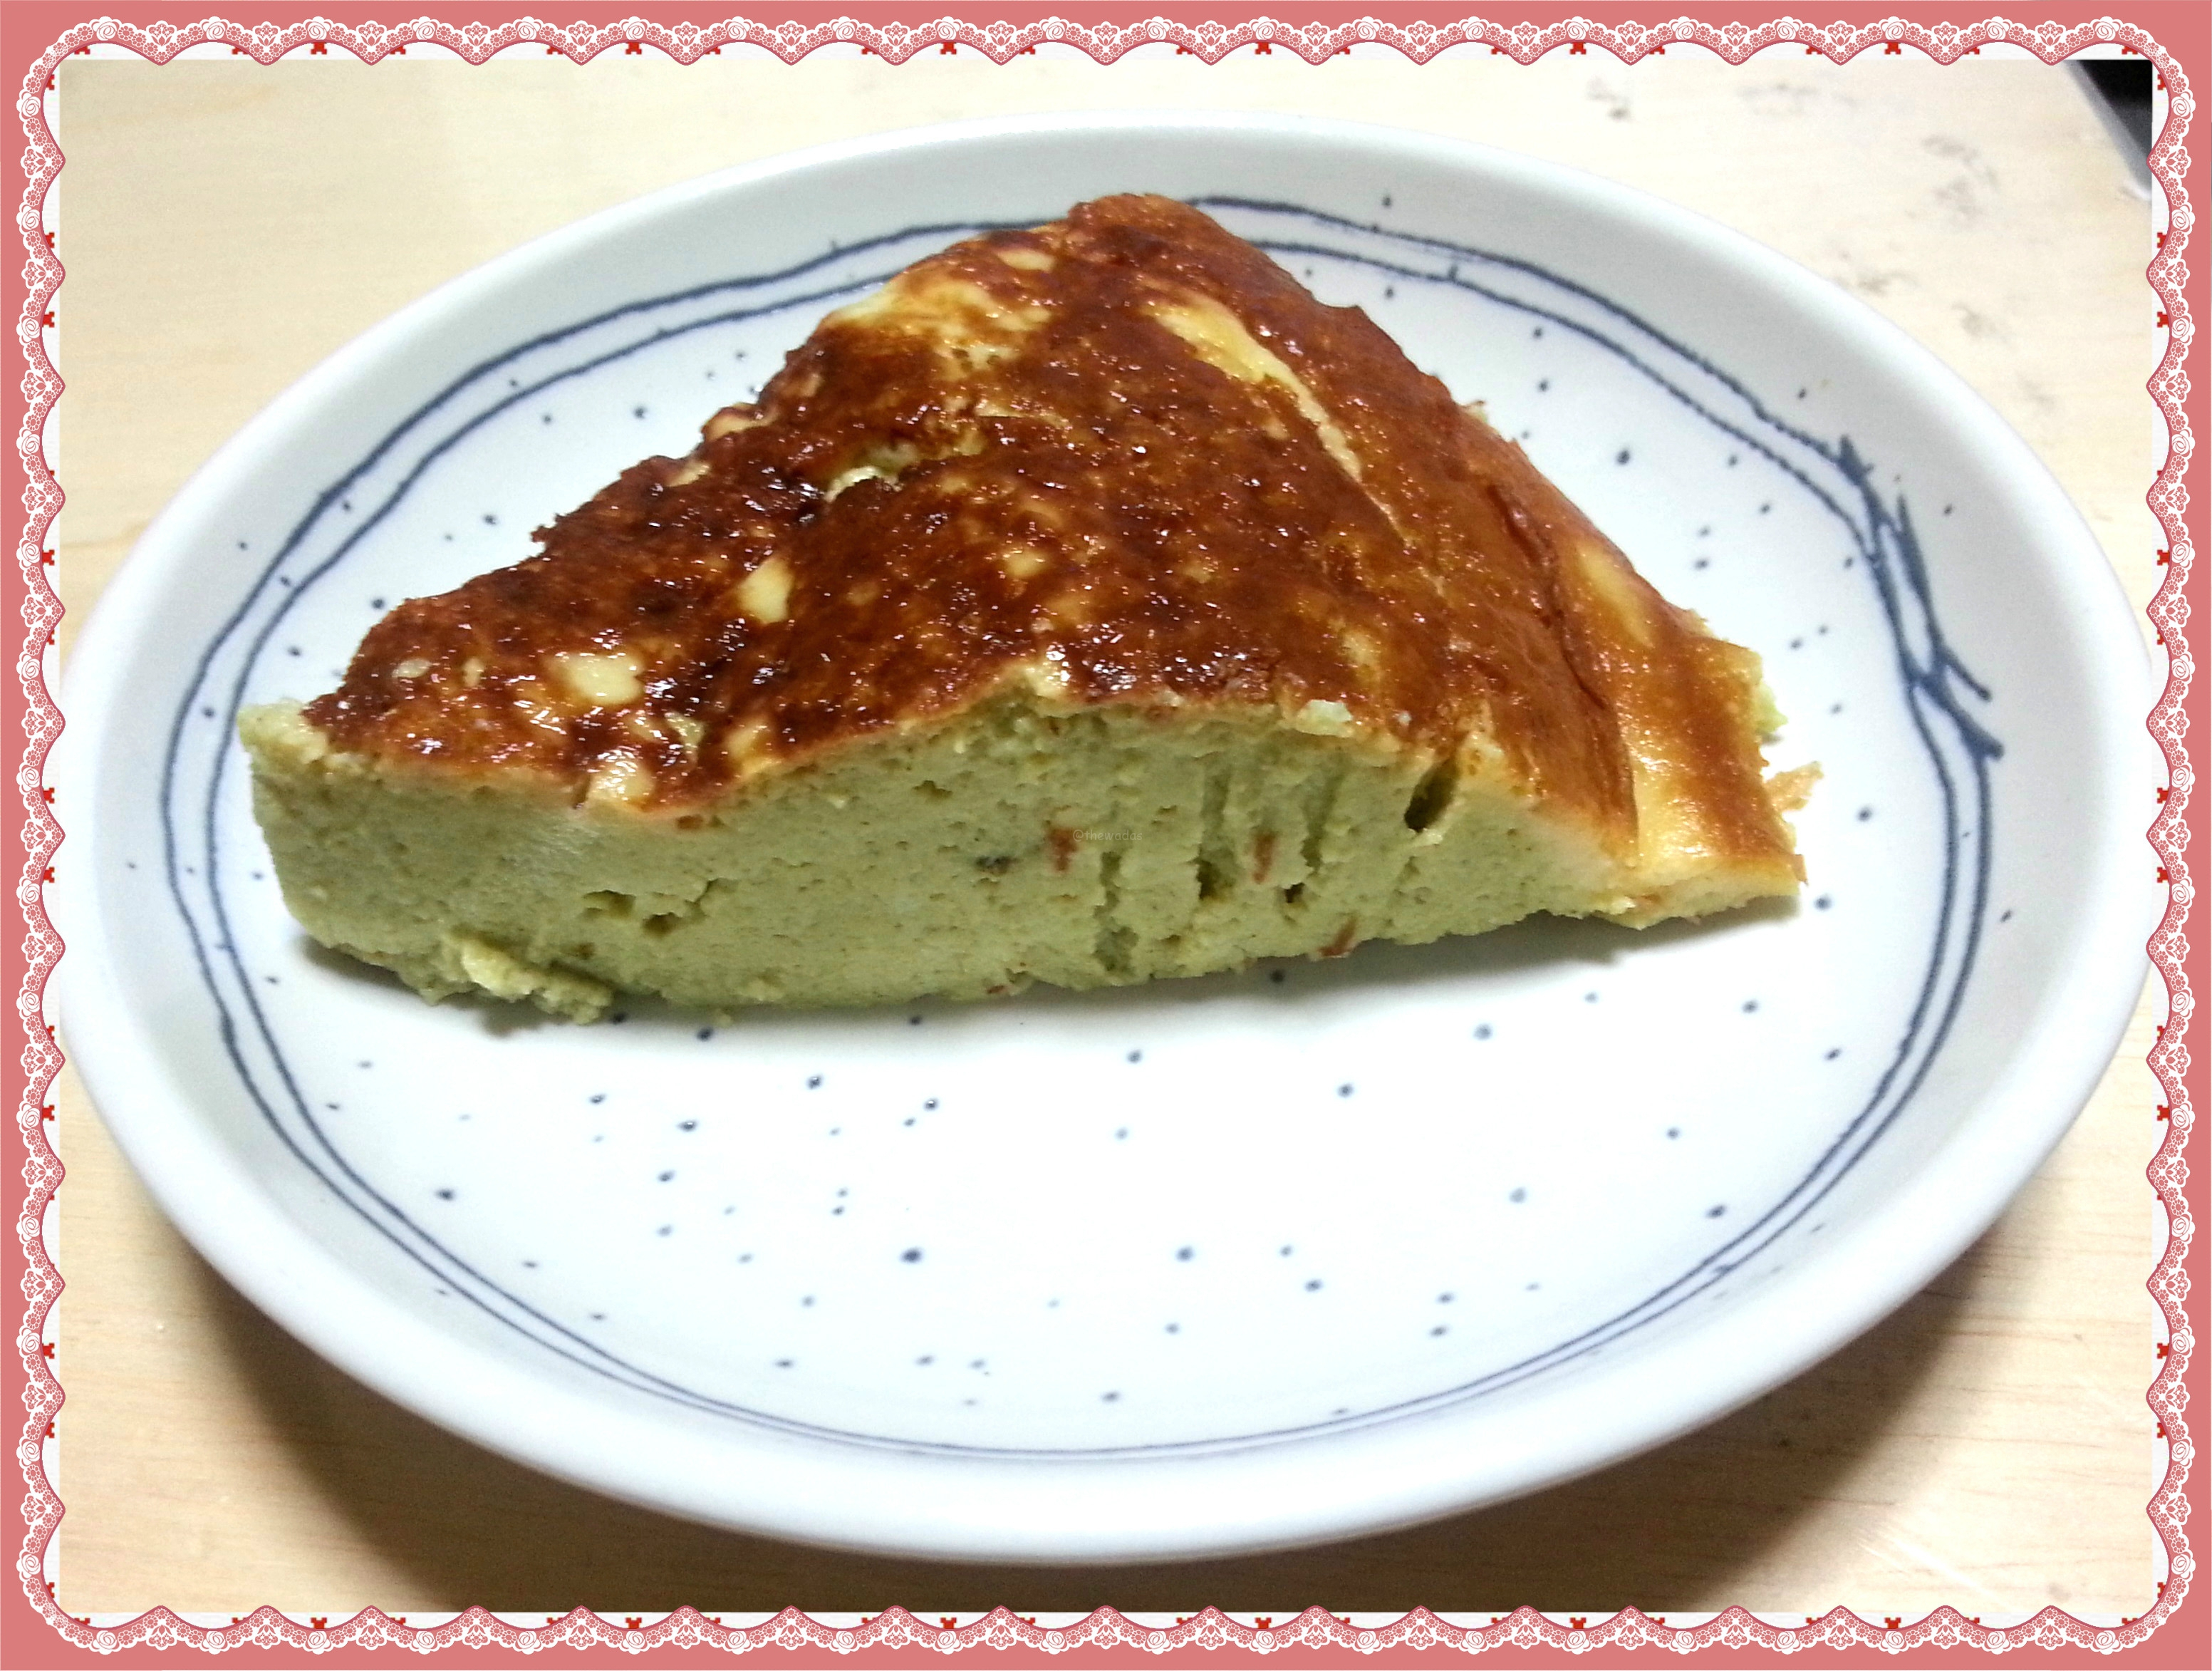 Rice cooker recipes: matcha cheese cake - featured image